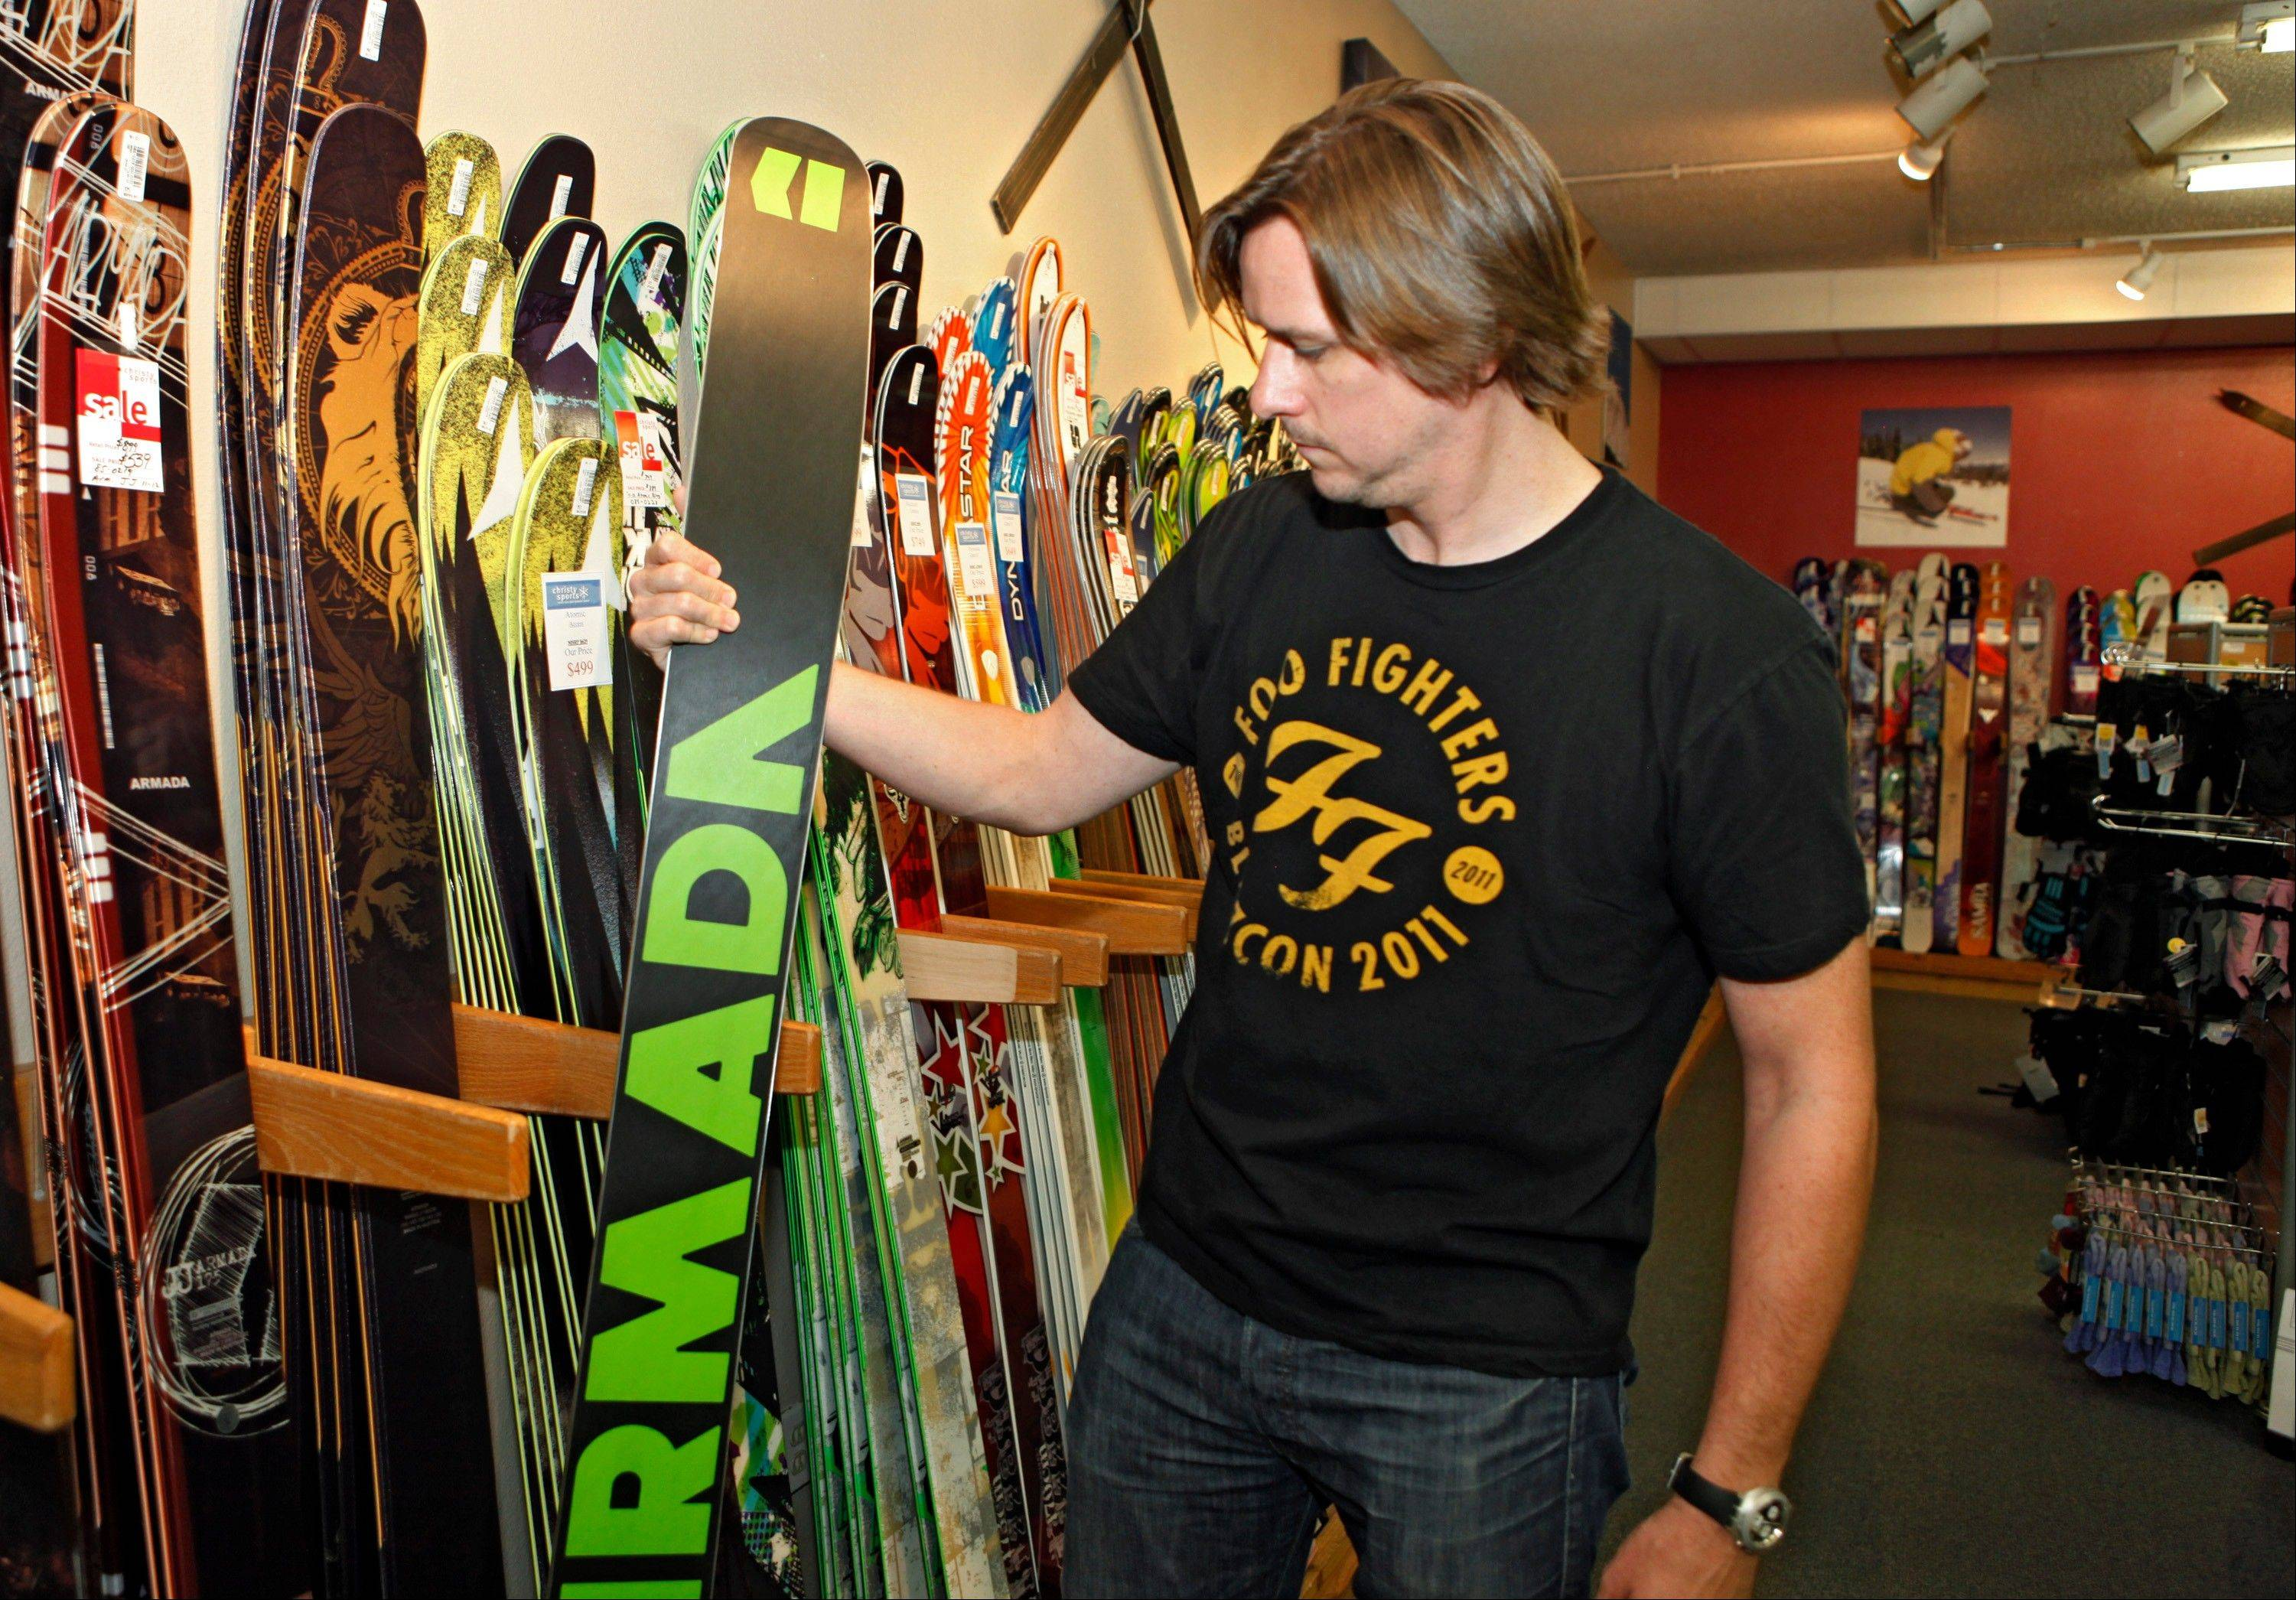 Rich Maloy looks at skis at a ski shop in Boulder, Colo. Maloy, of Boulder, didn't buy a season pass after moving to Colorado from New York last year, partly because of poor snow.